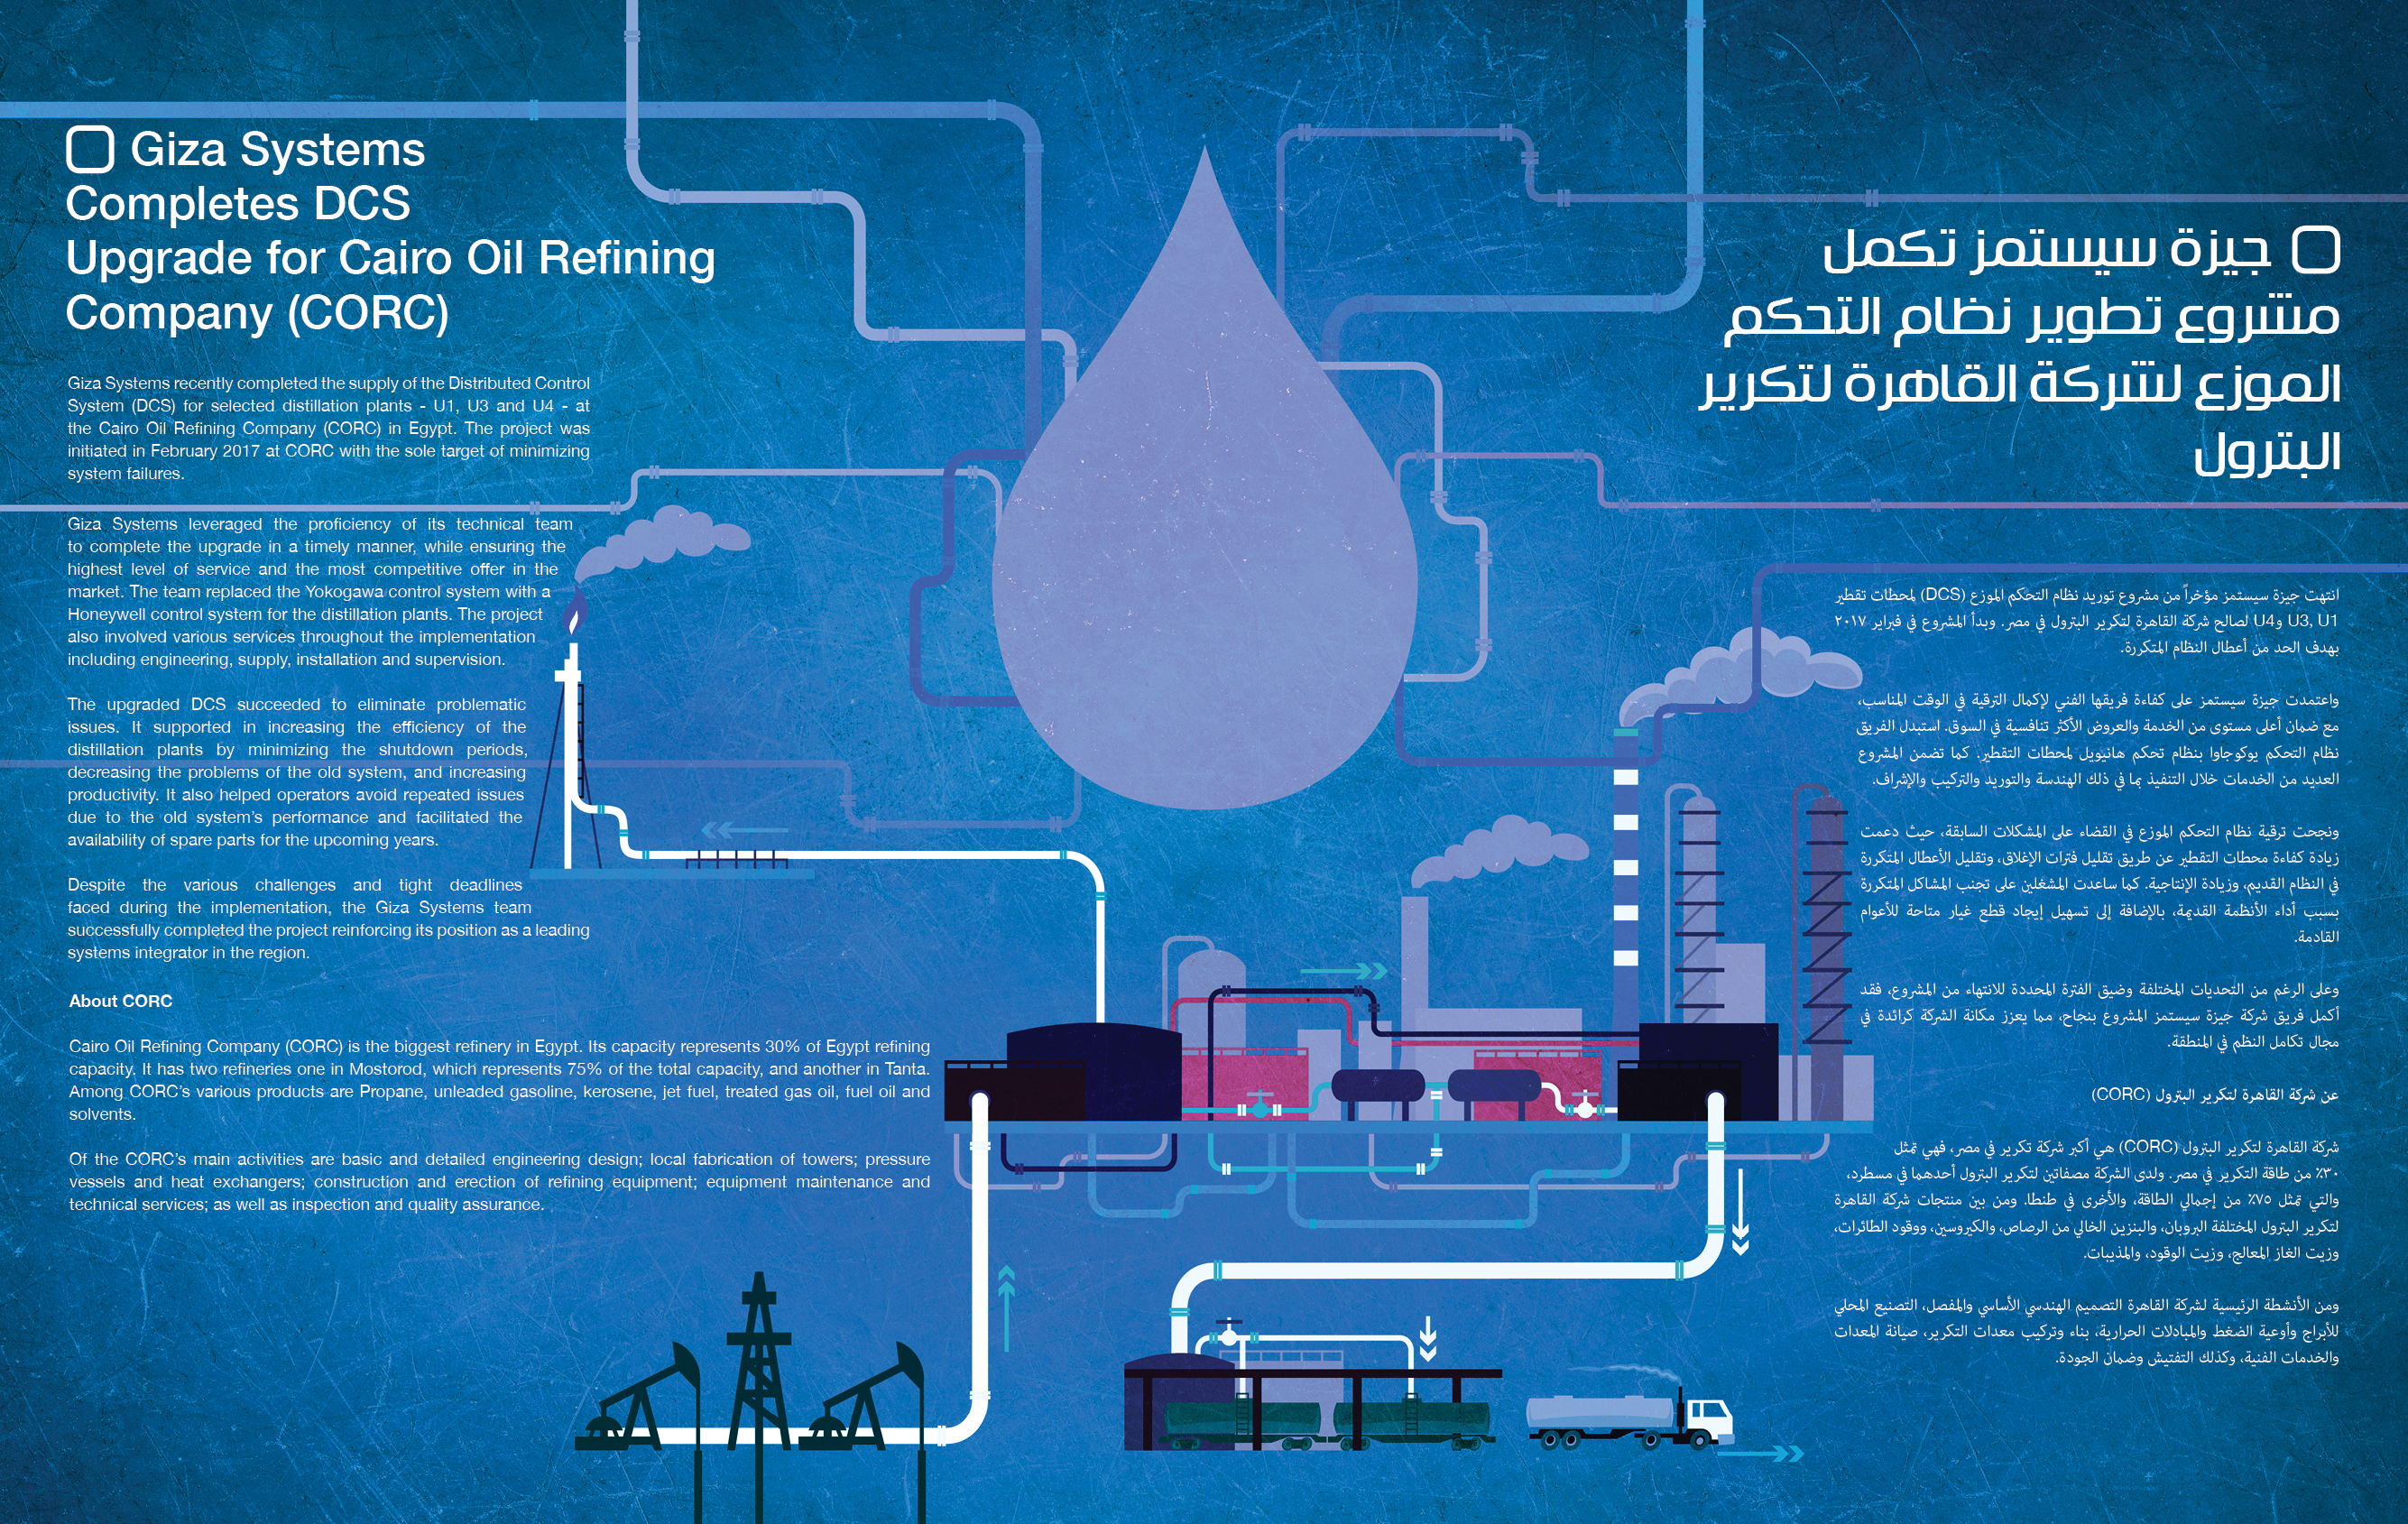 Giza Systems Completes DCS Upgrade for Cairo Oil Refining